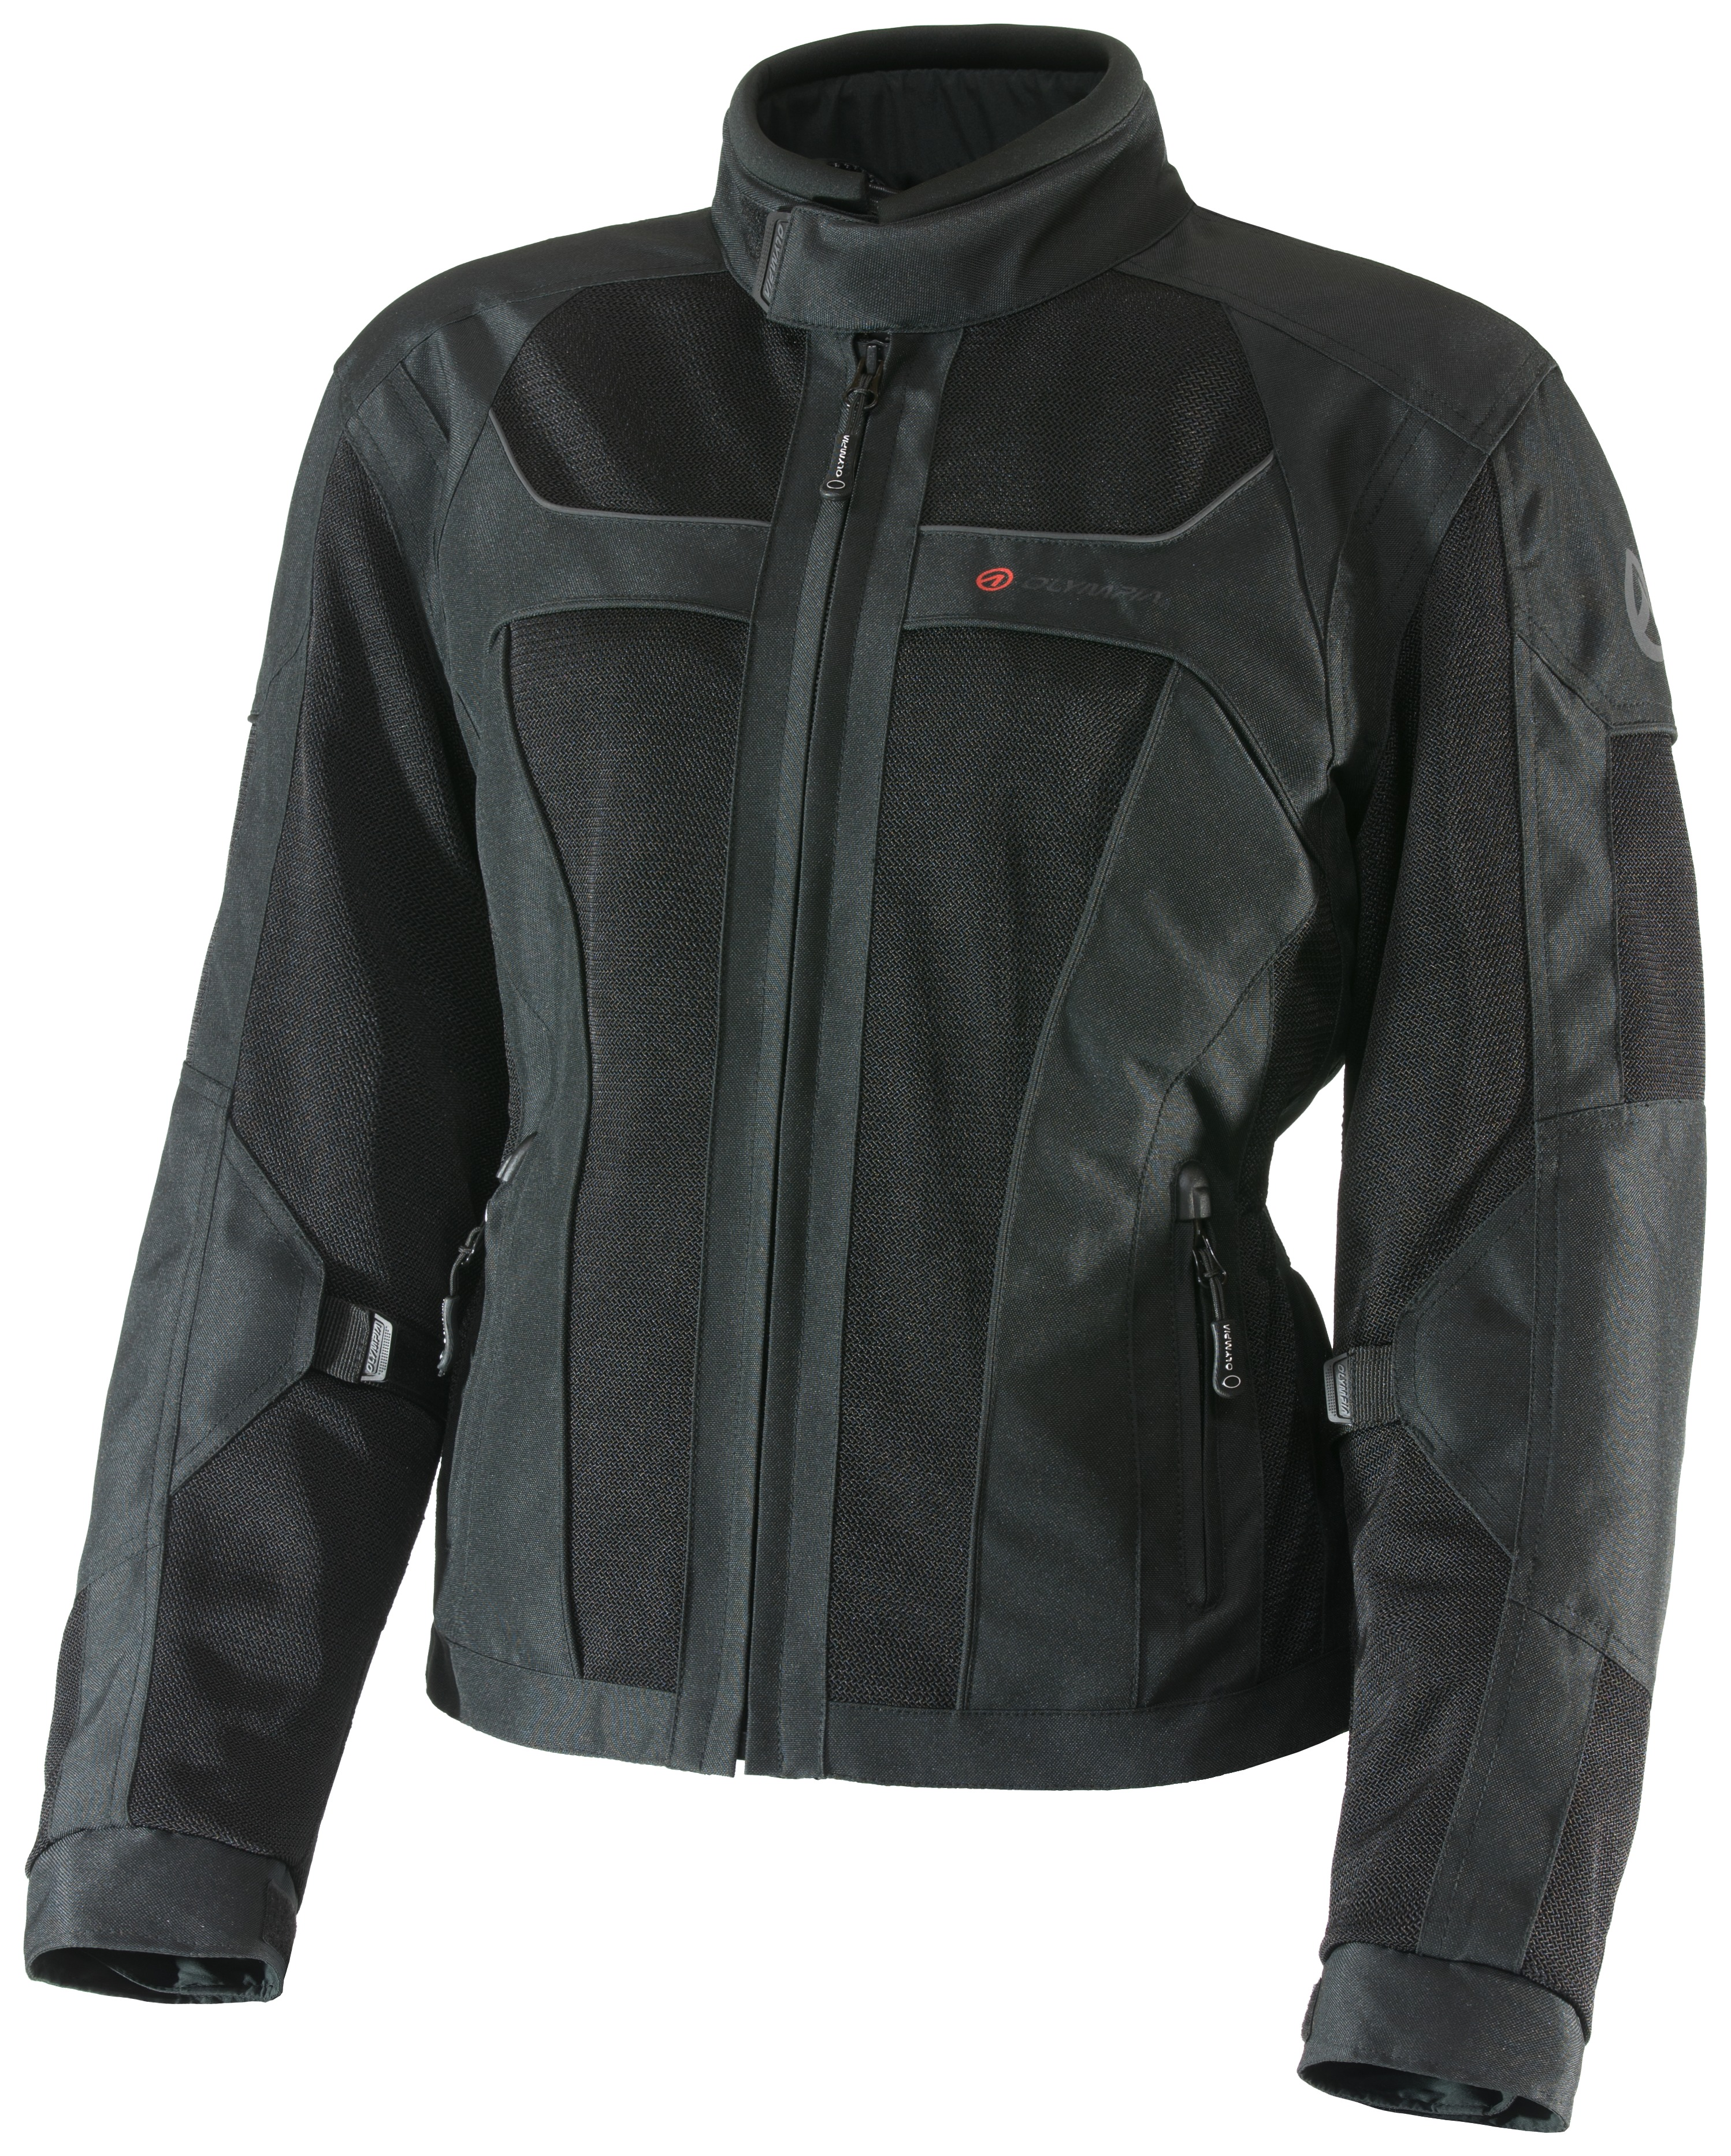 Coats, Jackets & Vests Qualified Country Road Womens Zip Jacket Size S Products Hot Sale